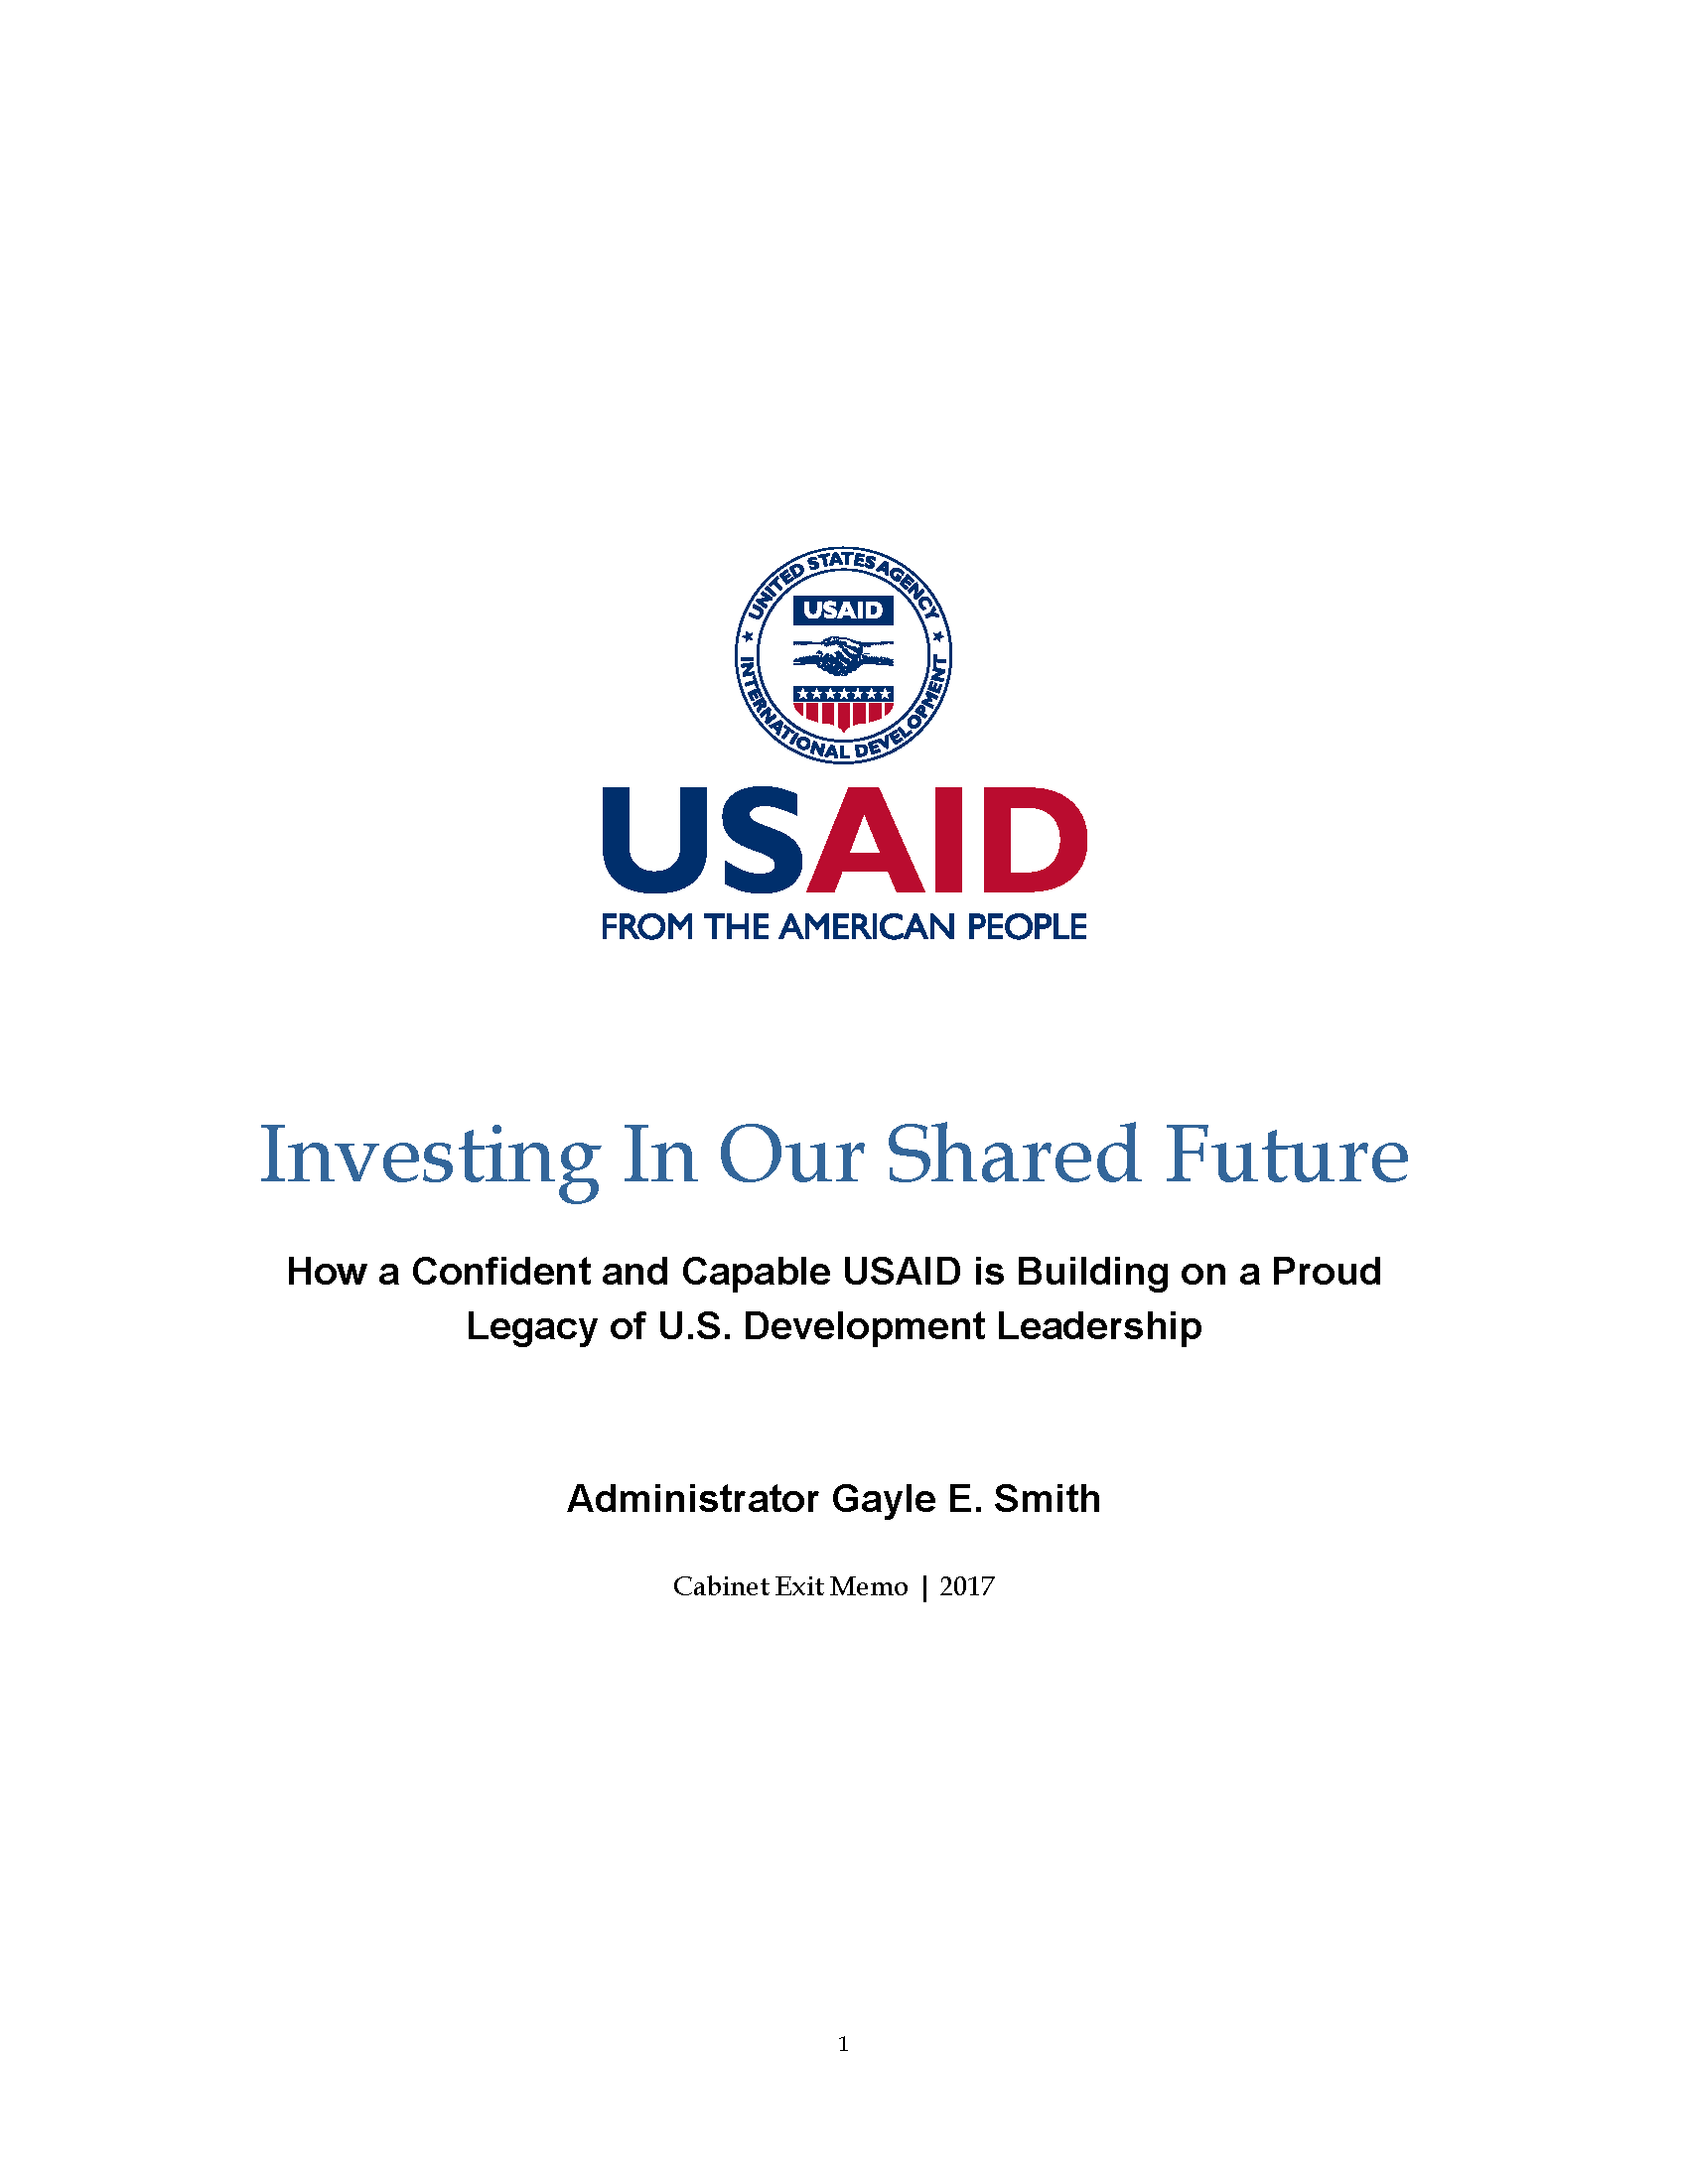 Investing in Our Shared Future